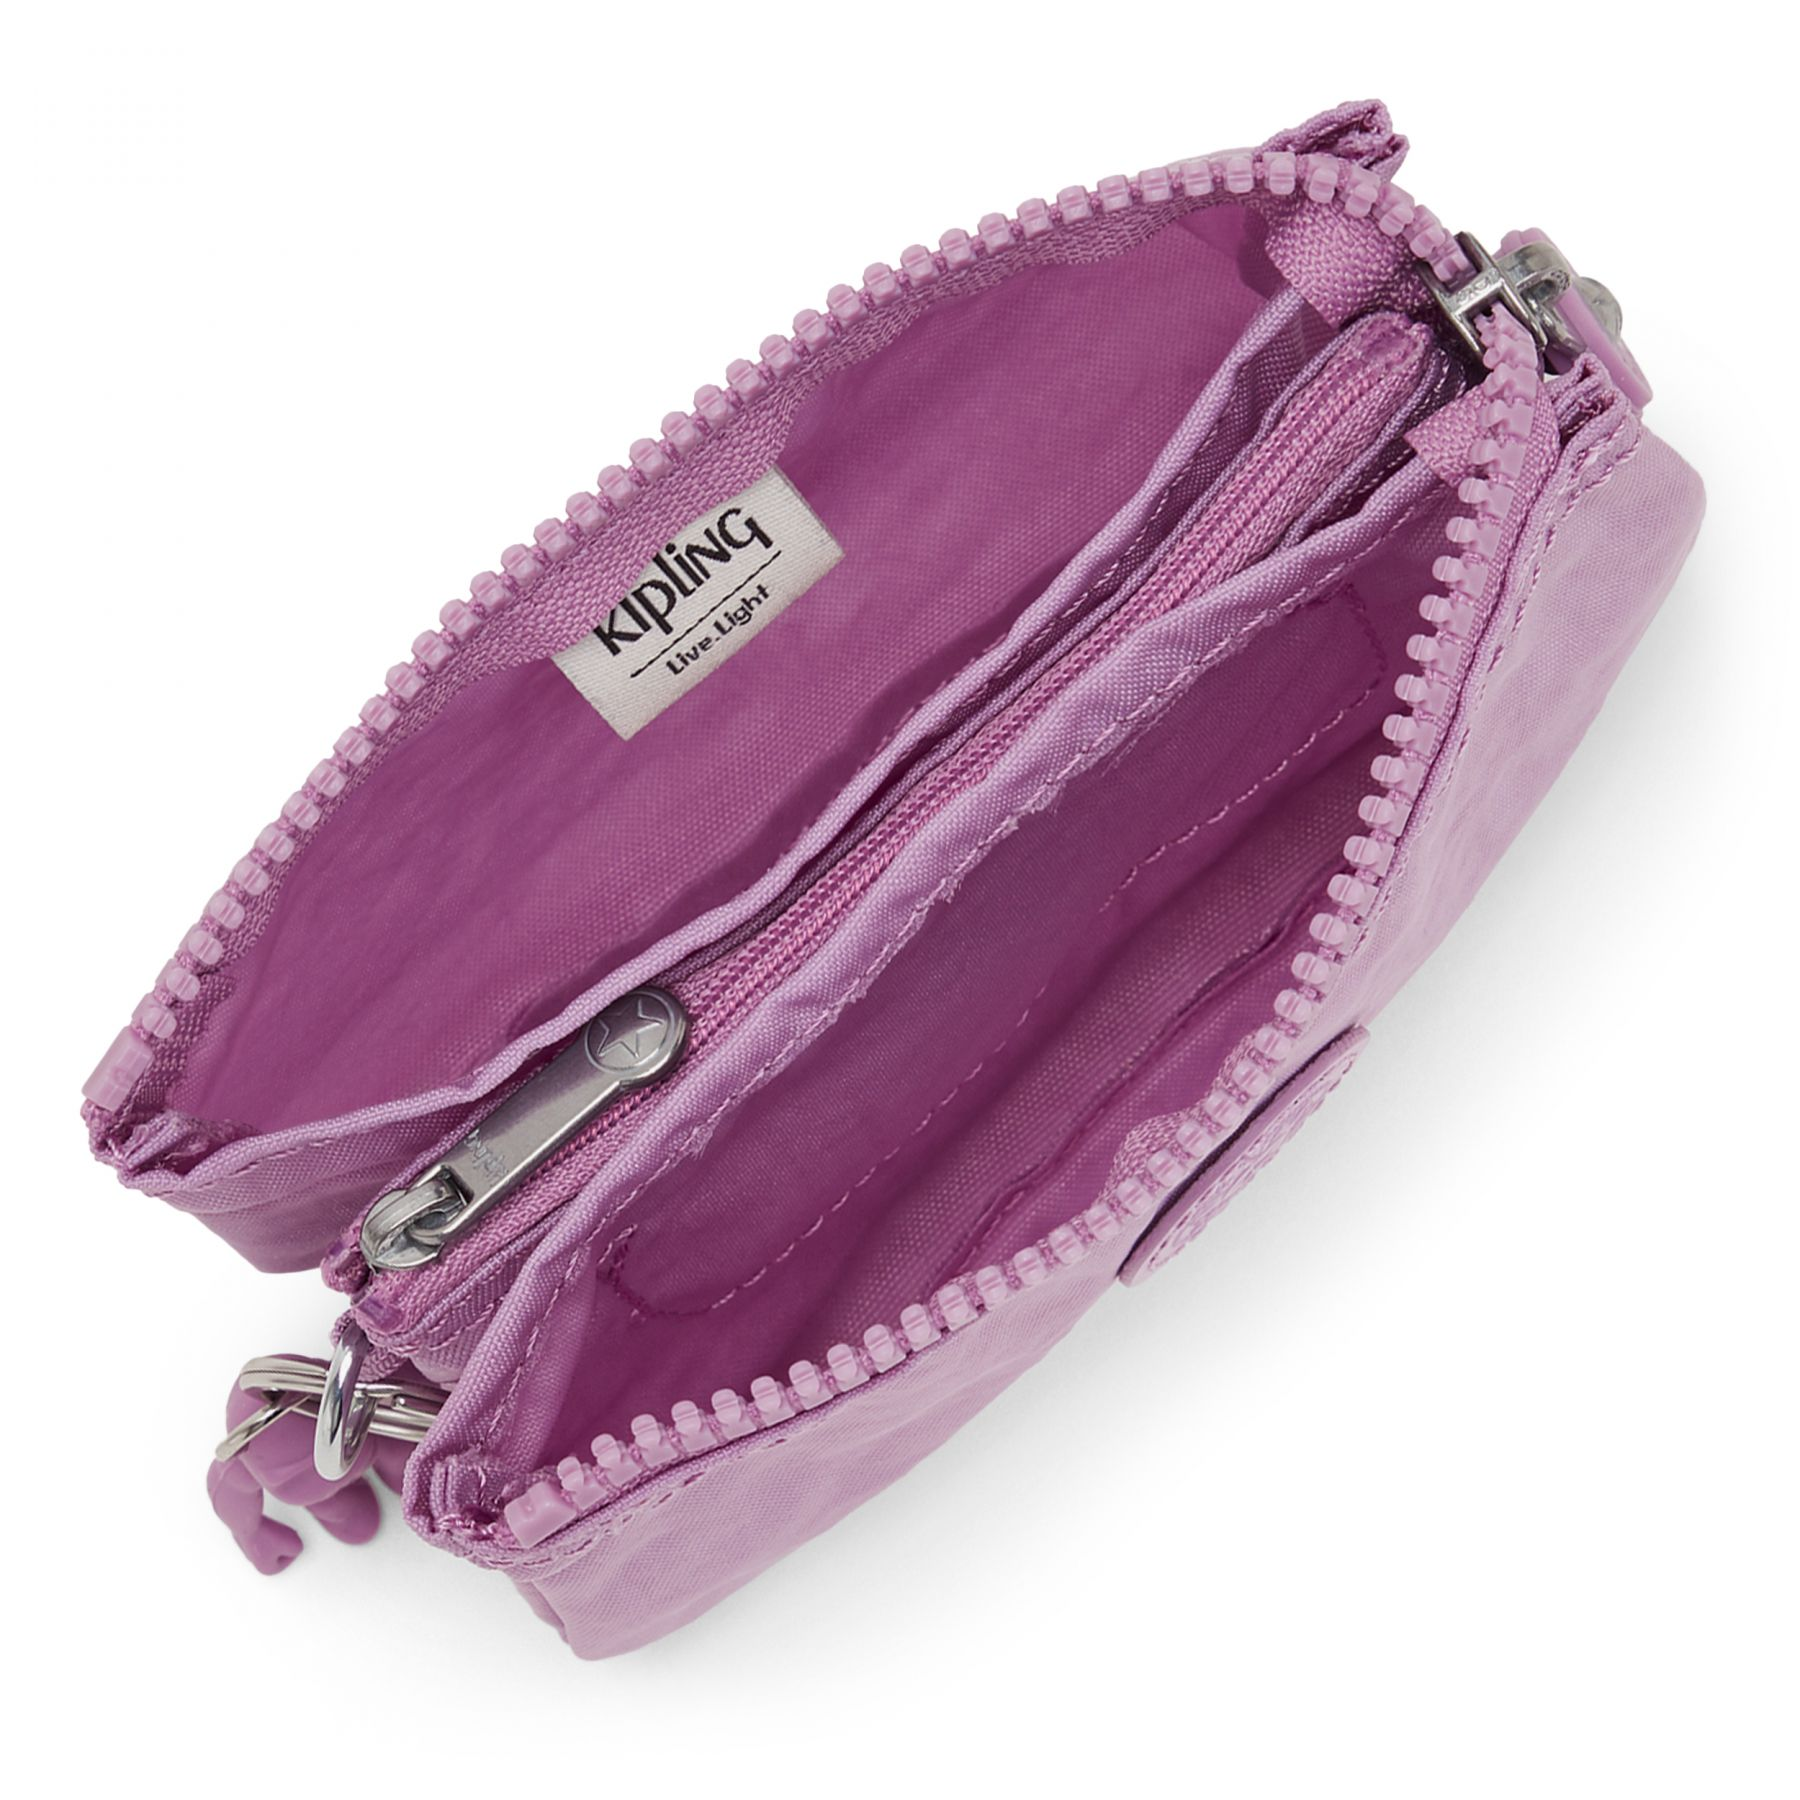 CREATIVITY S ACCESSORIES by Kipling - Inside view